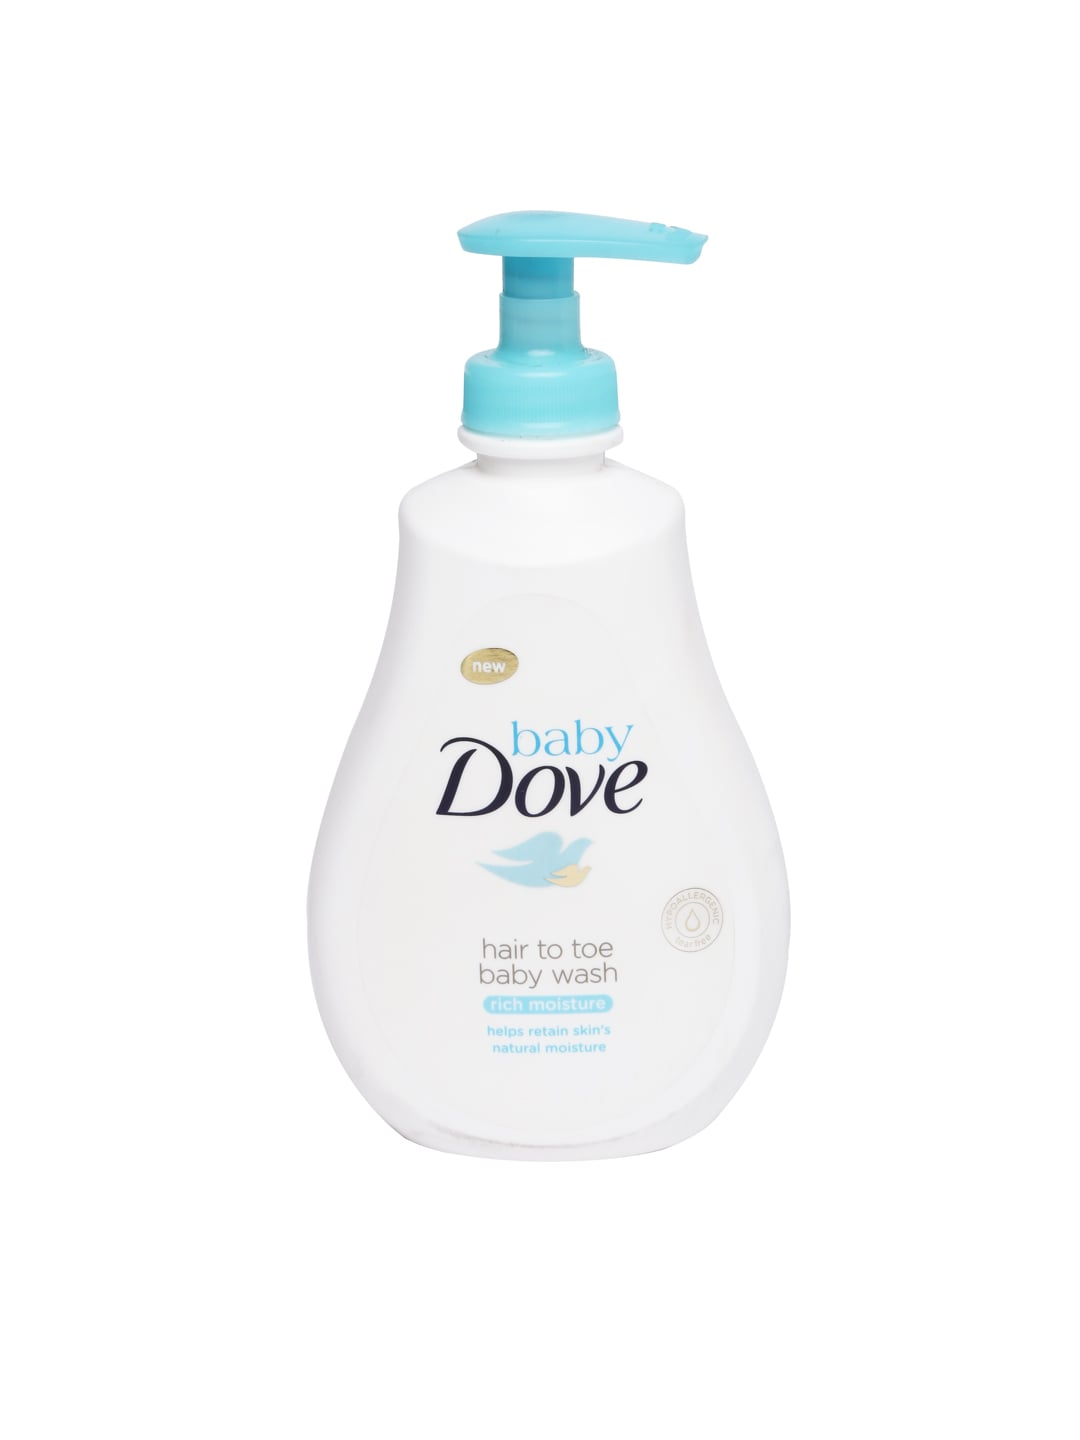 Dove Baby White Rich Moisture Hair To Toe Baby Wash & Shampoo 200 ml image